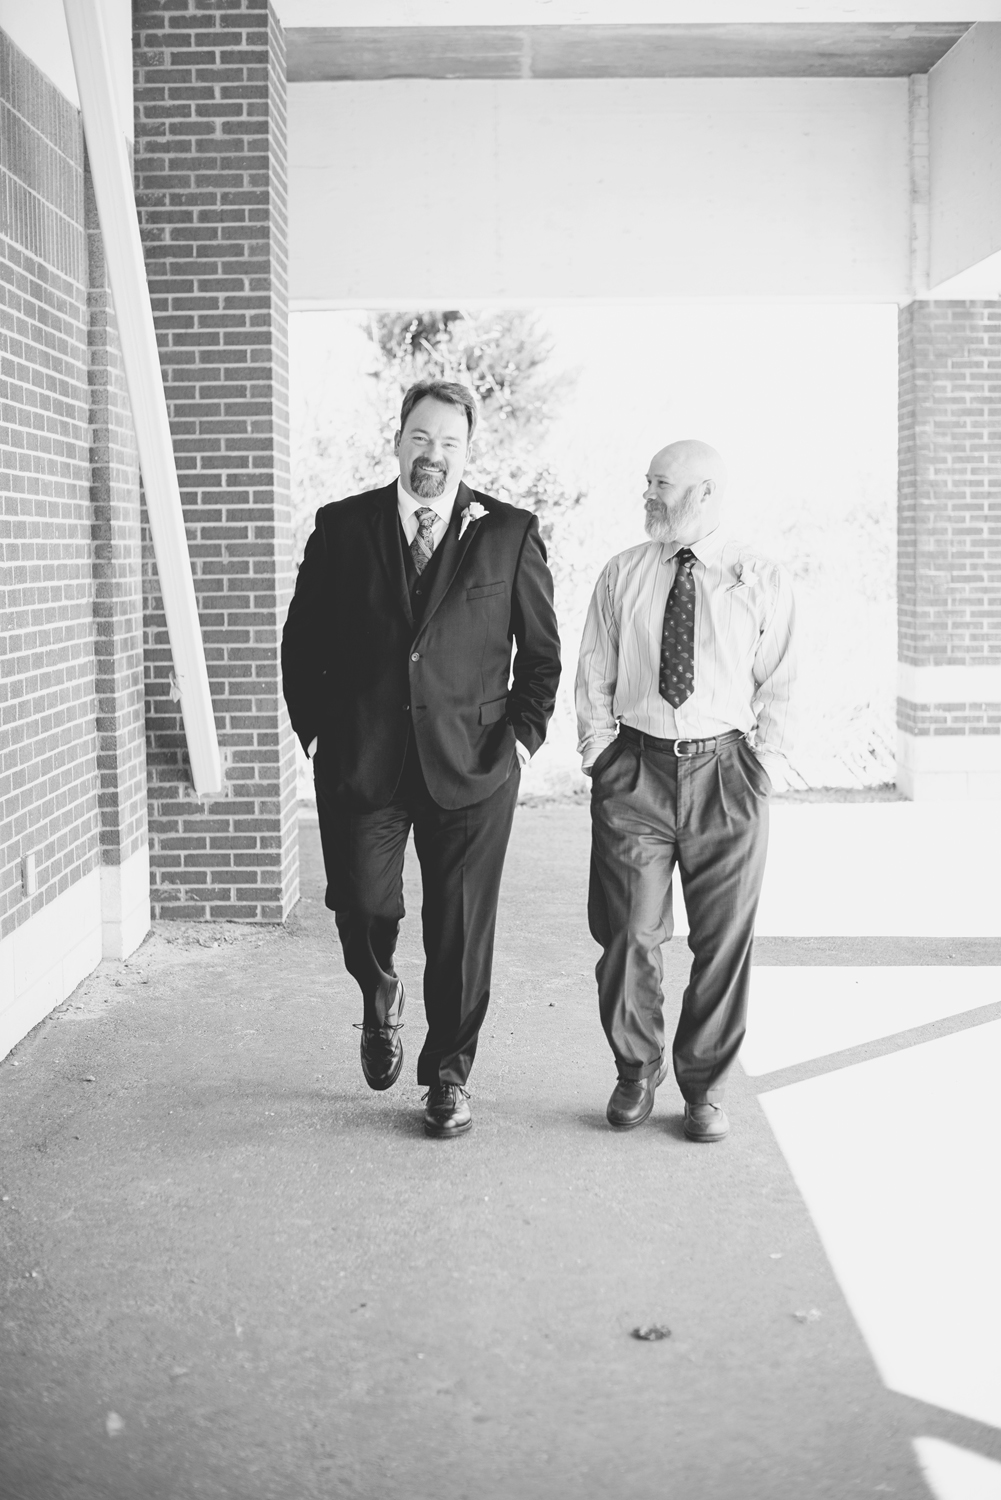 Wedding party of two | Black and white